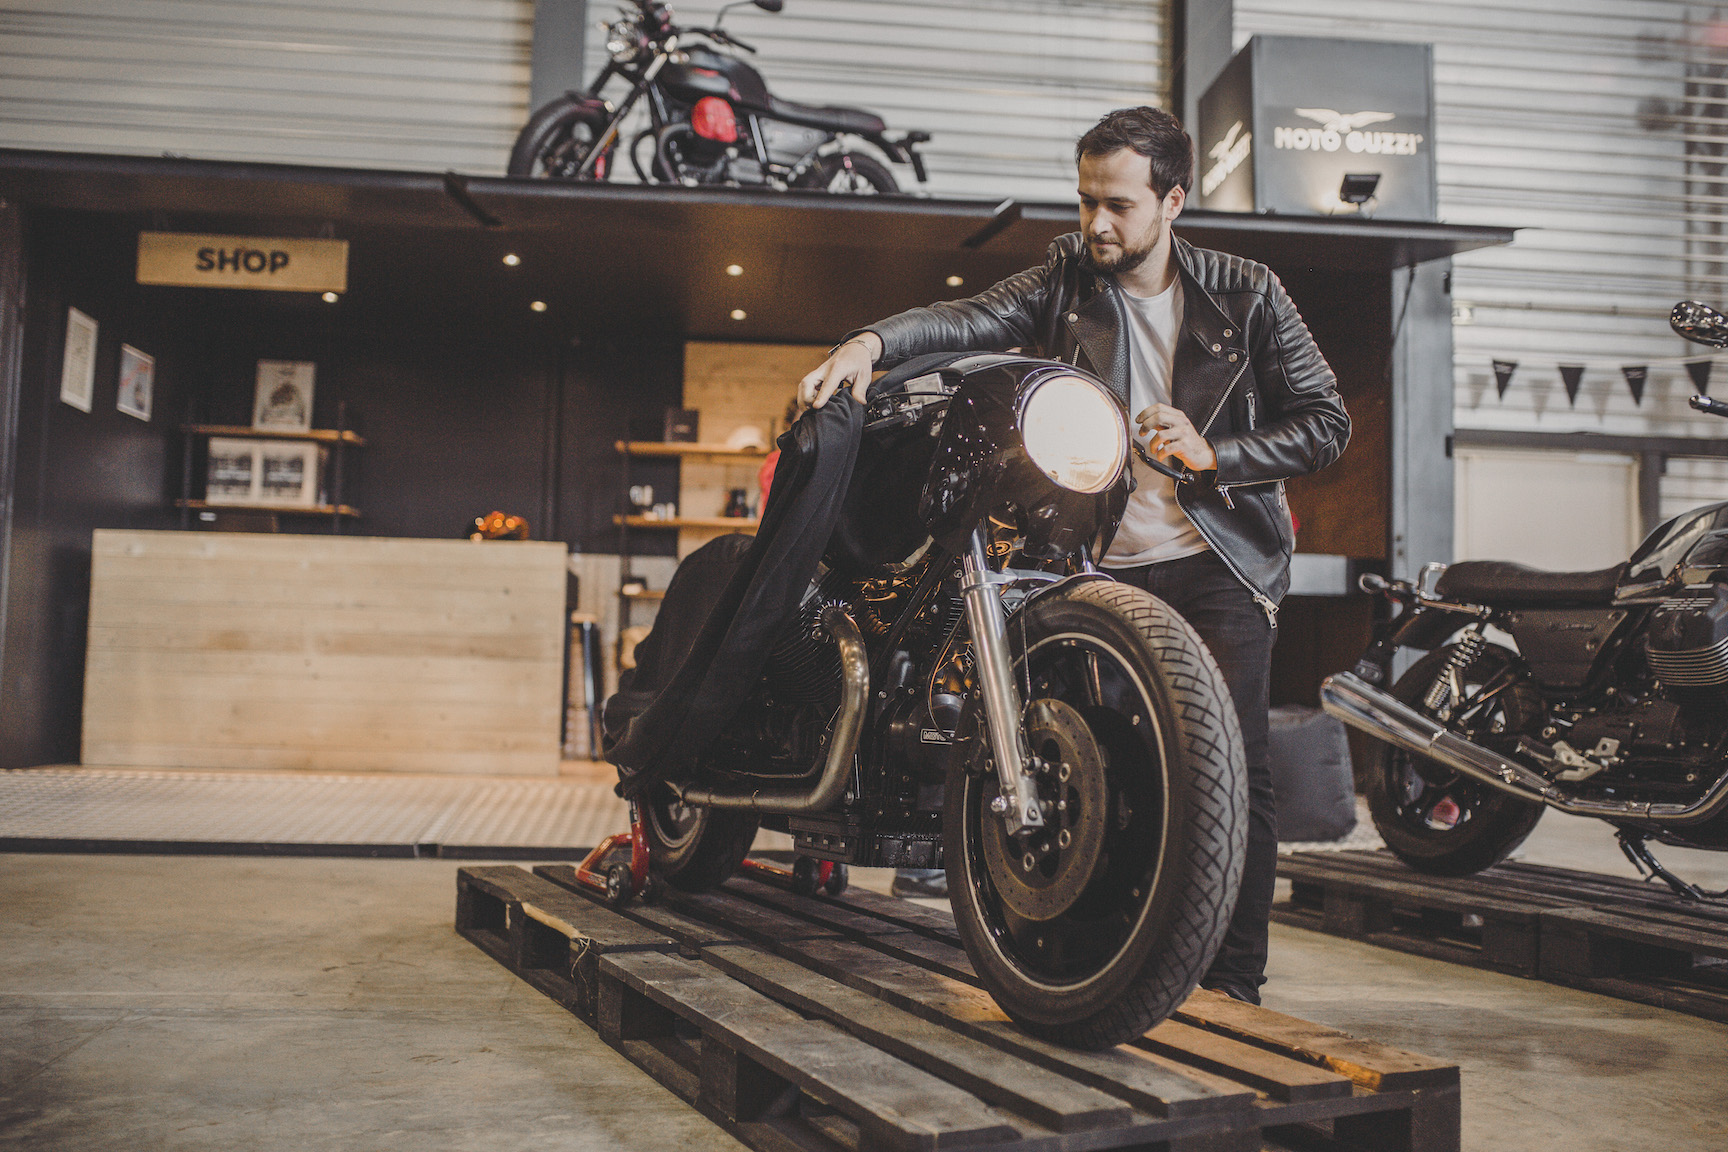 Moto Guzzi V7 Iii Limited Unveiled At Wheels And Waves Automotive